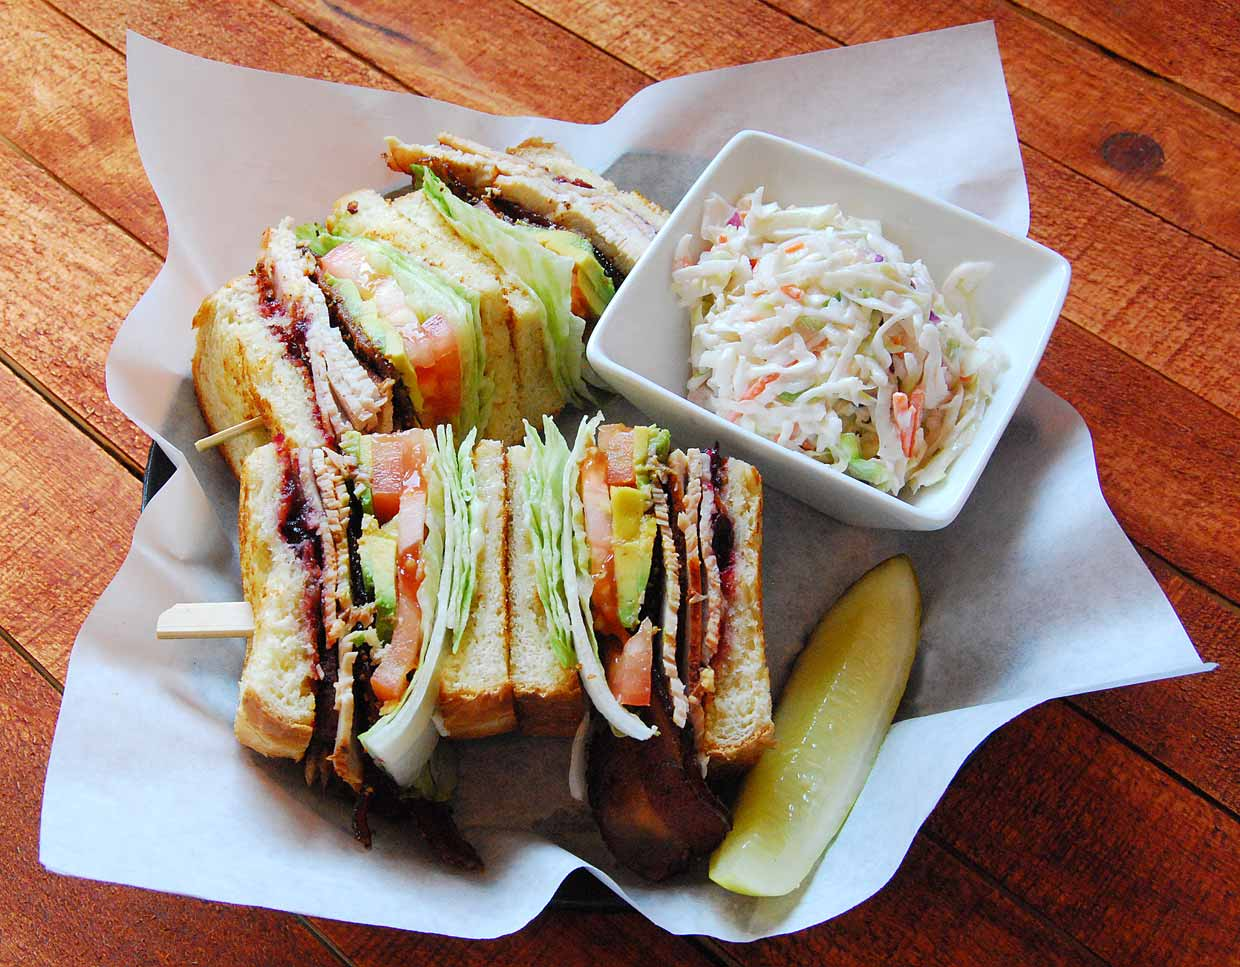 club sandwich with a side of coleslaw